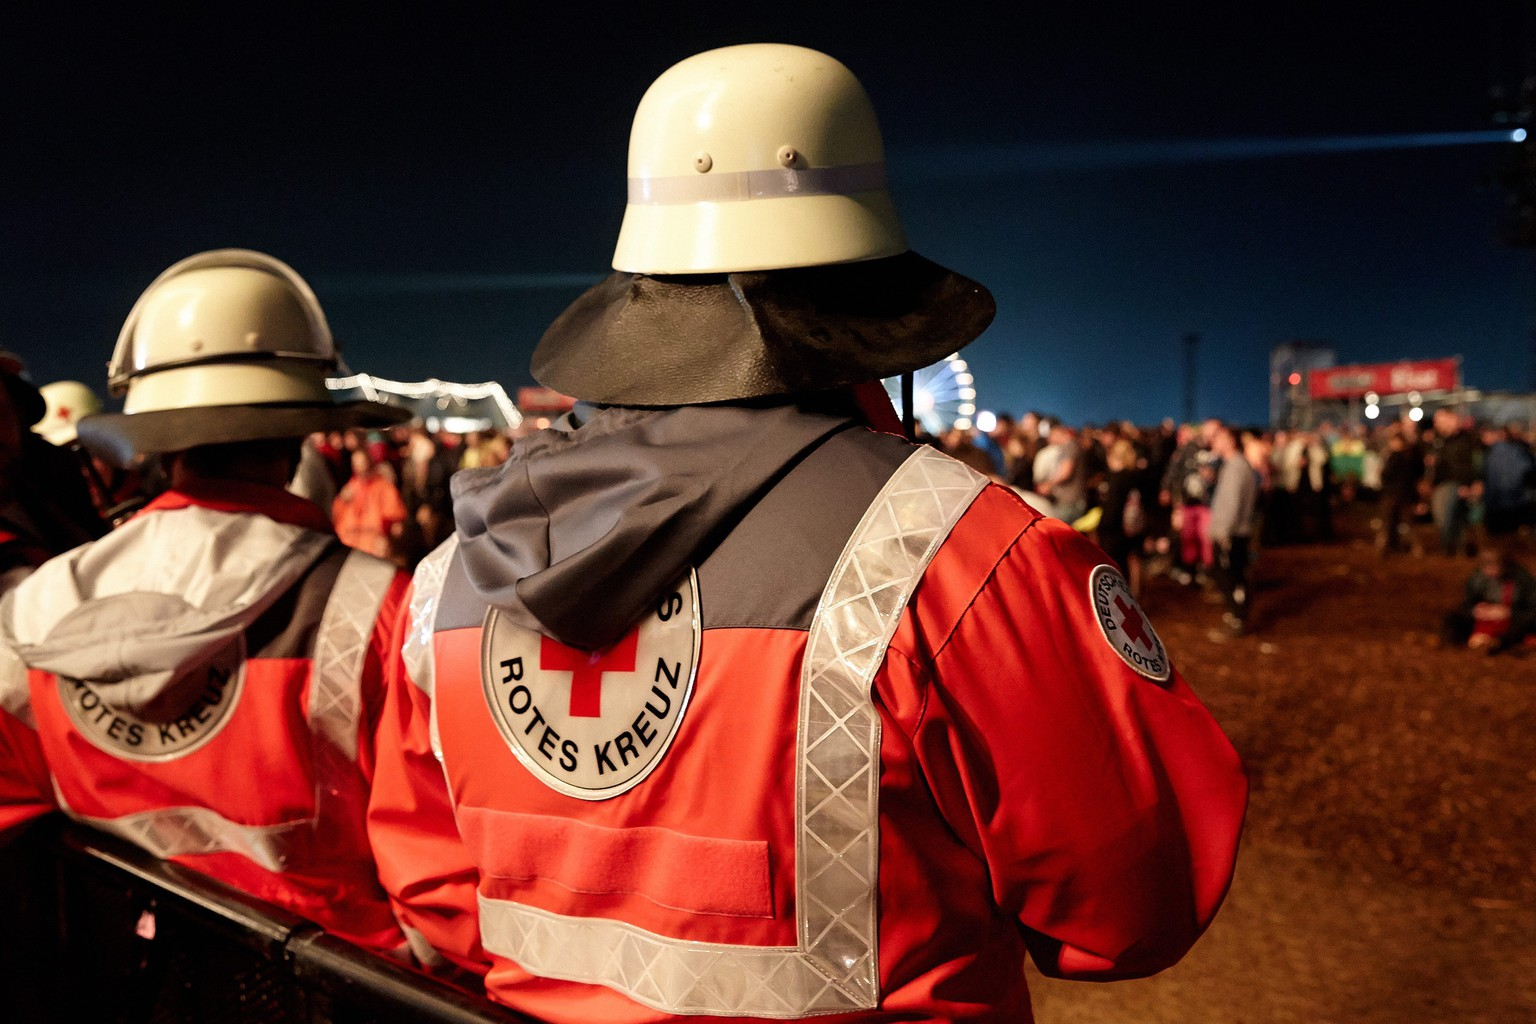 epa05345146 Members of the Deutsches Rotes Kreuz (German Red Cross) are on stand-by during the festival 'Rock am Ring' in Mendig, Germany, 03 June 2016. The event originally took place at the Nuerburgring circuit before it closed its doors in 2014. The 31th edition of the festival takes place on a former military airfield in Mendig from 03 to 05 June.  EPA/THOMAS FREY